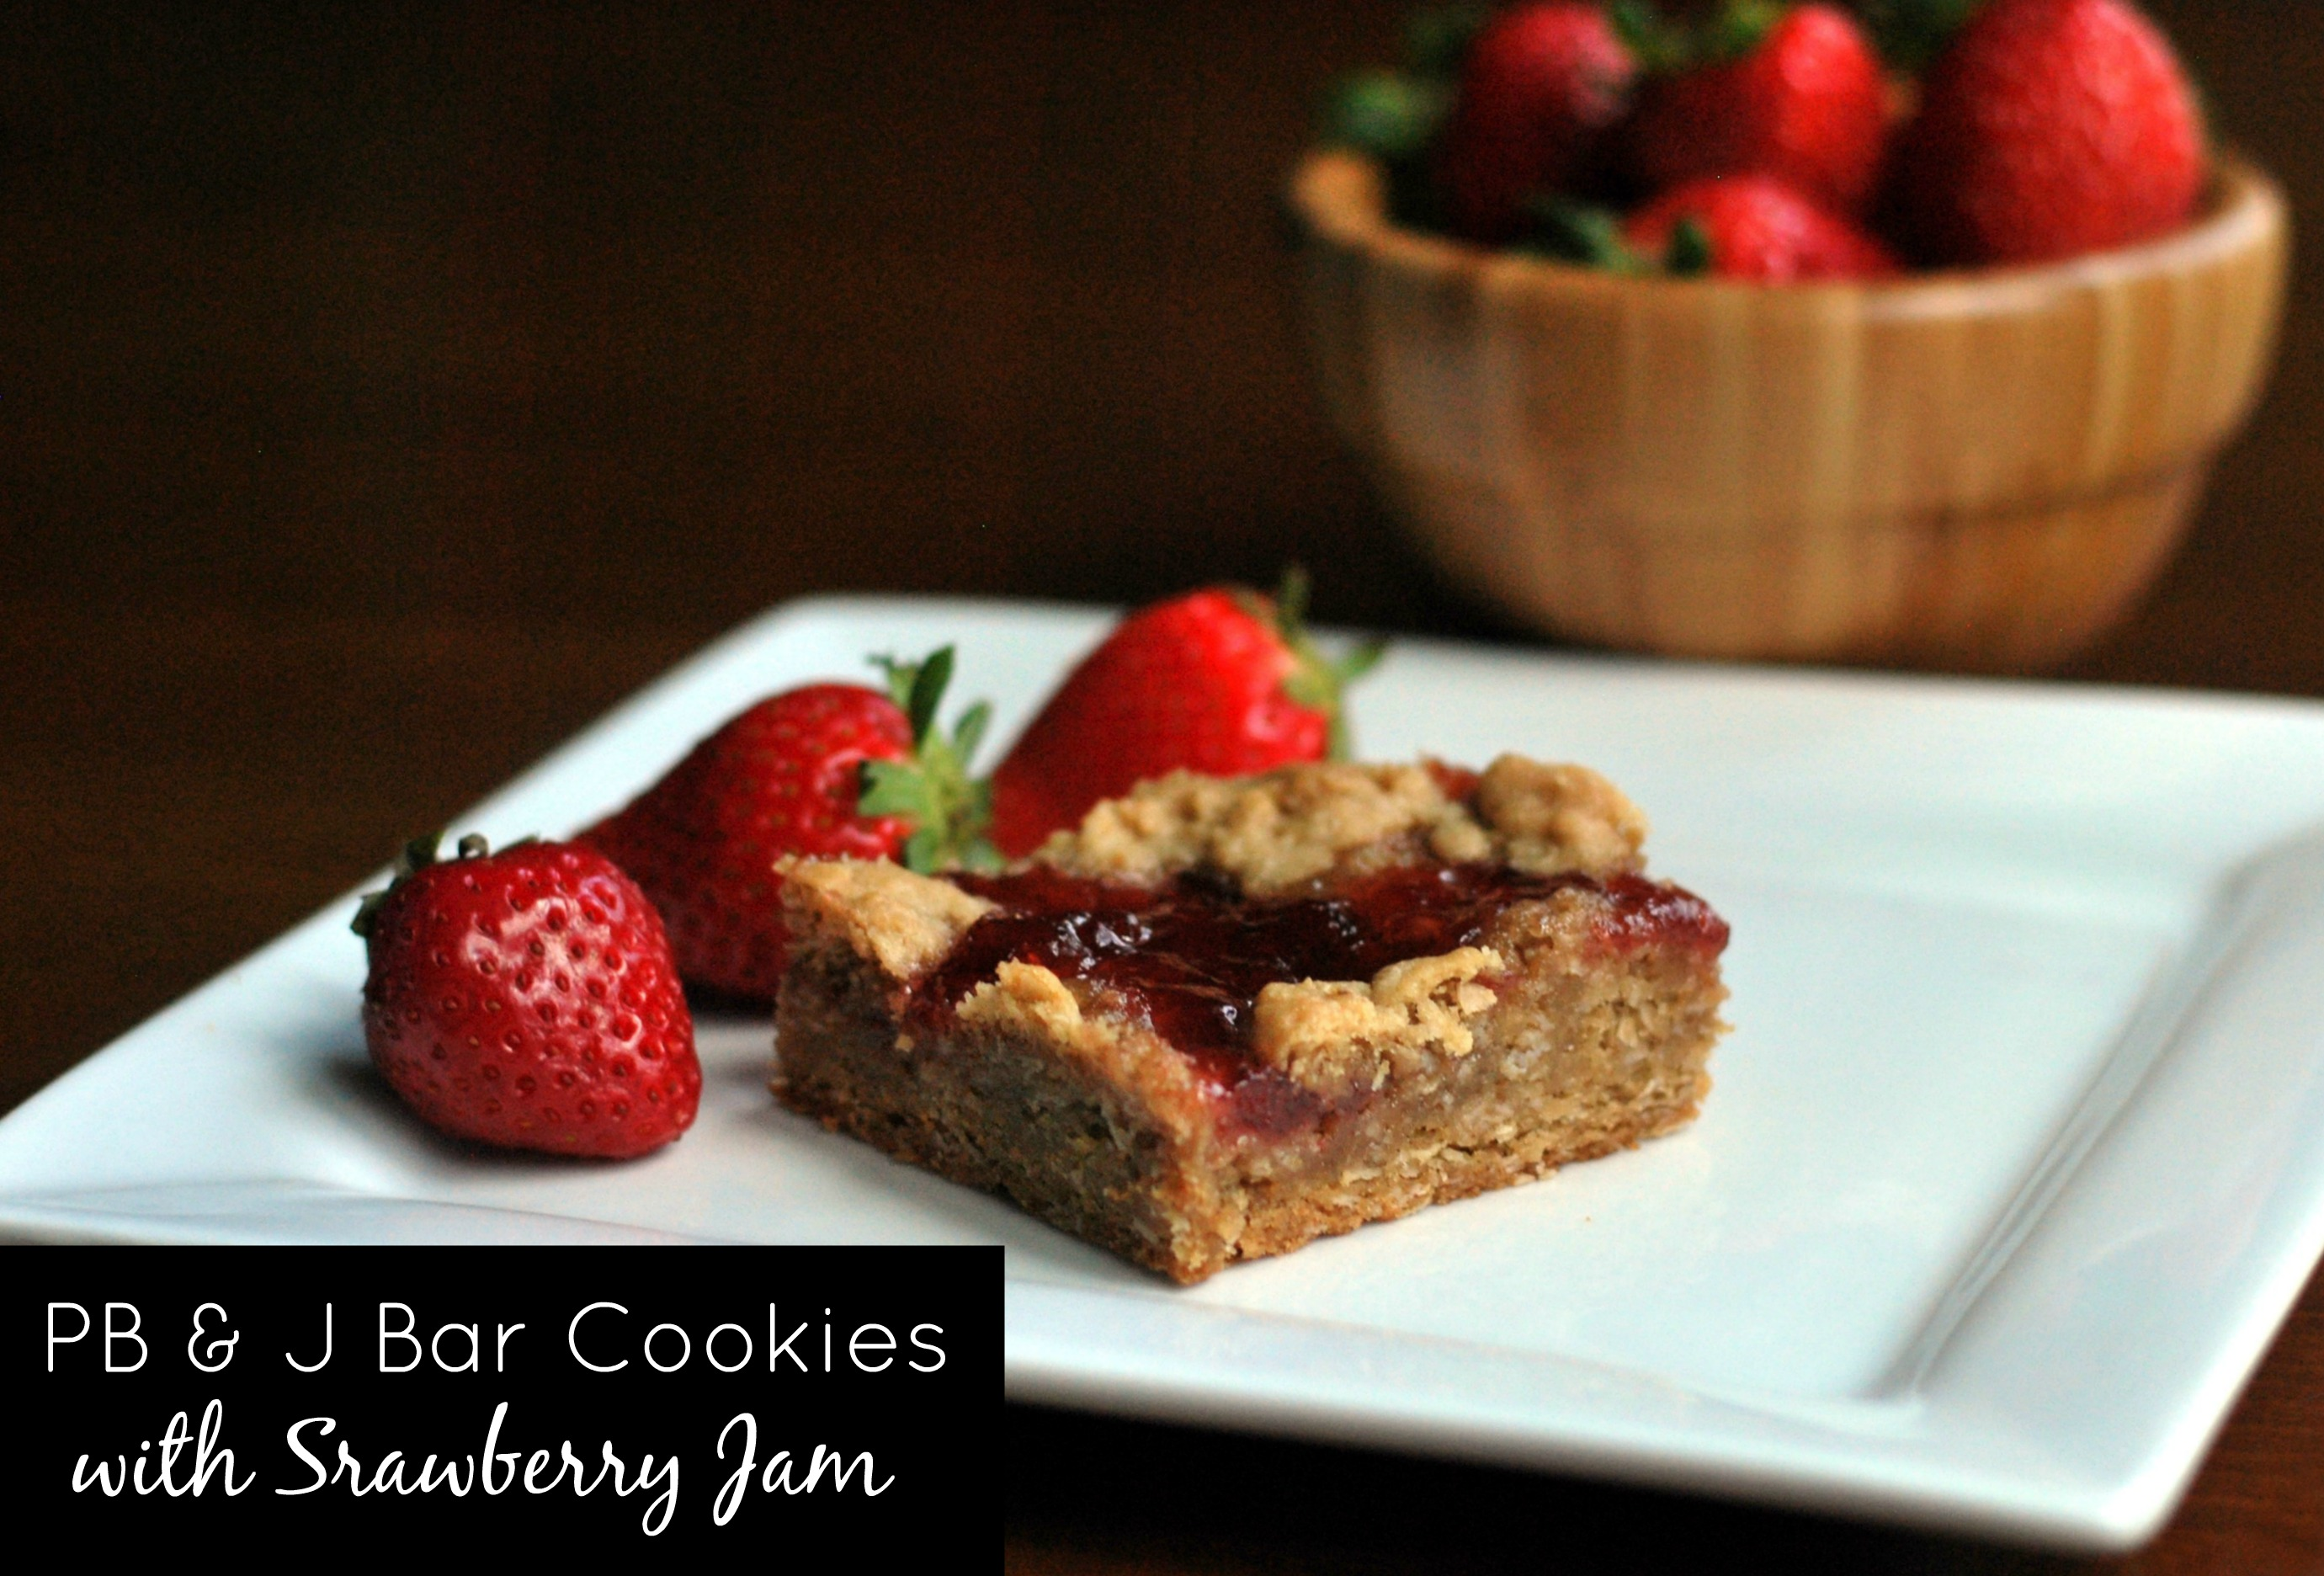 PB & J Bar Cookies with Strawberry Jam